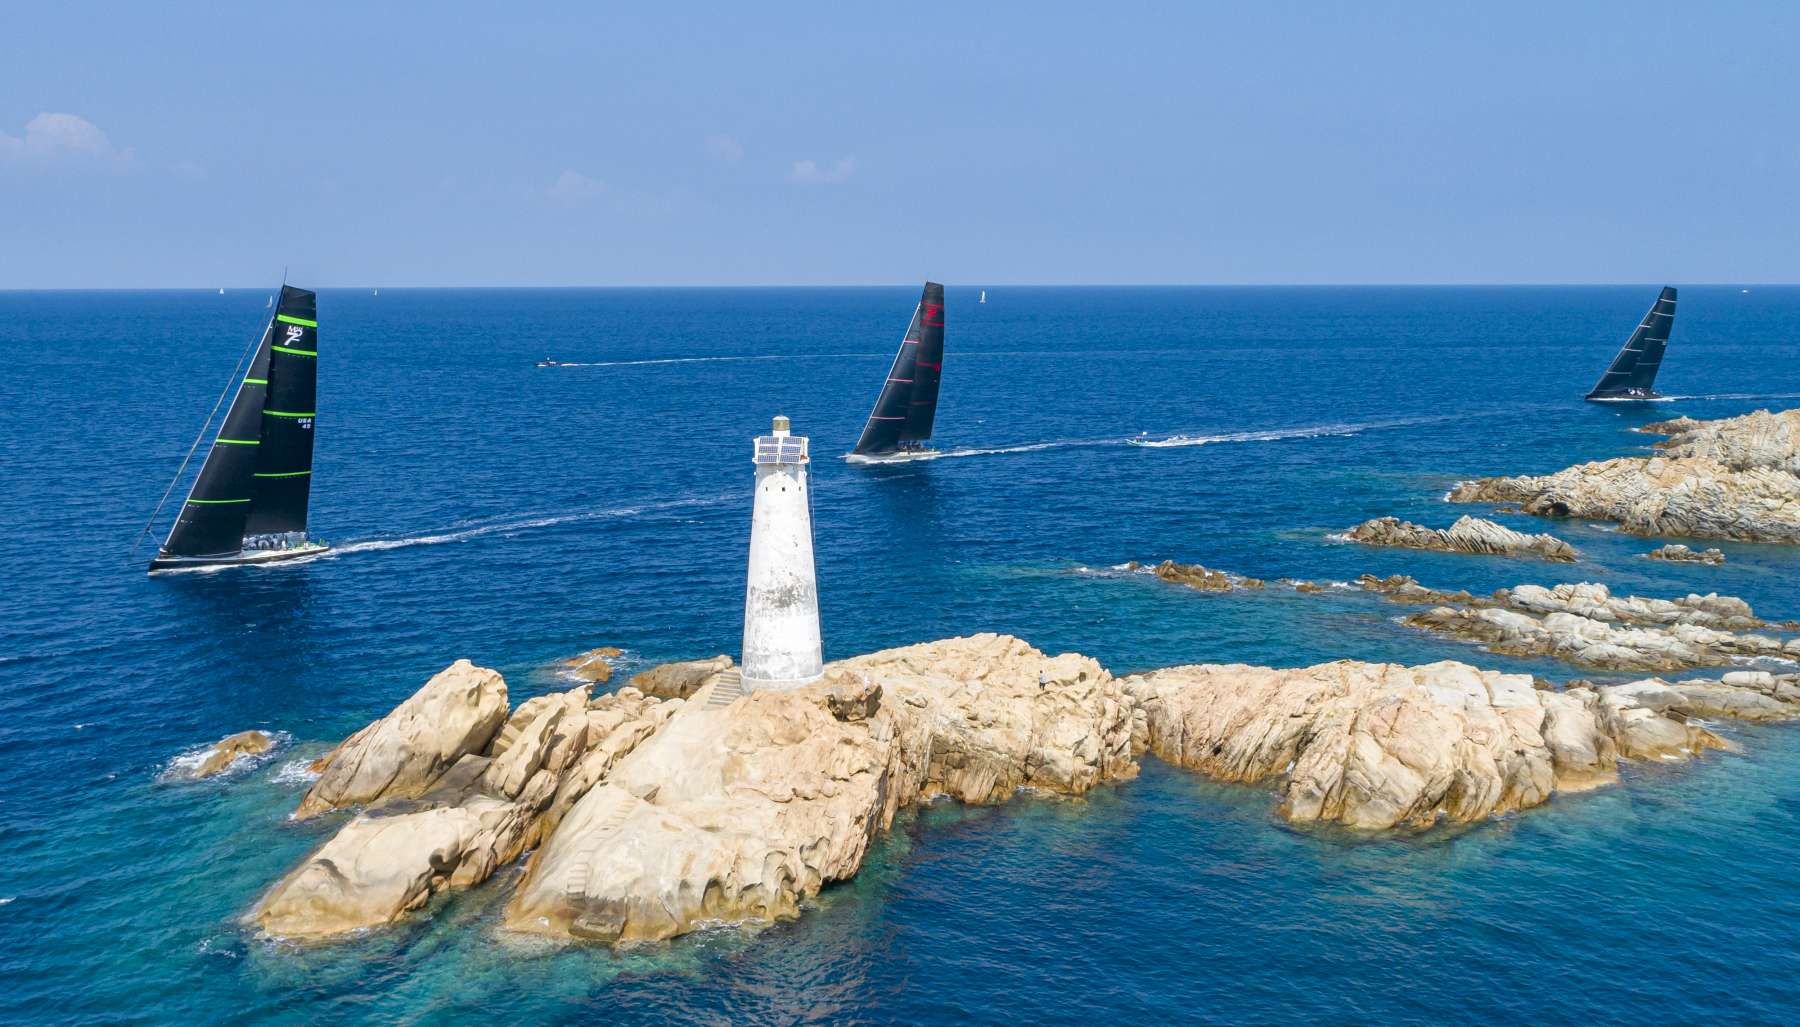 Down to business on day two of Maxi Yacht Rolex Cup - NEWS - Yacht Club Costa Smeralda